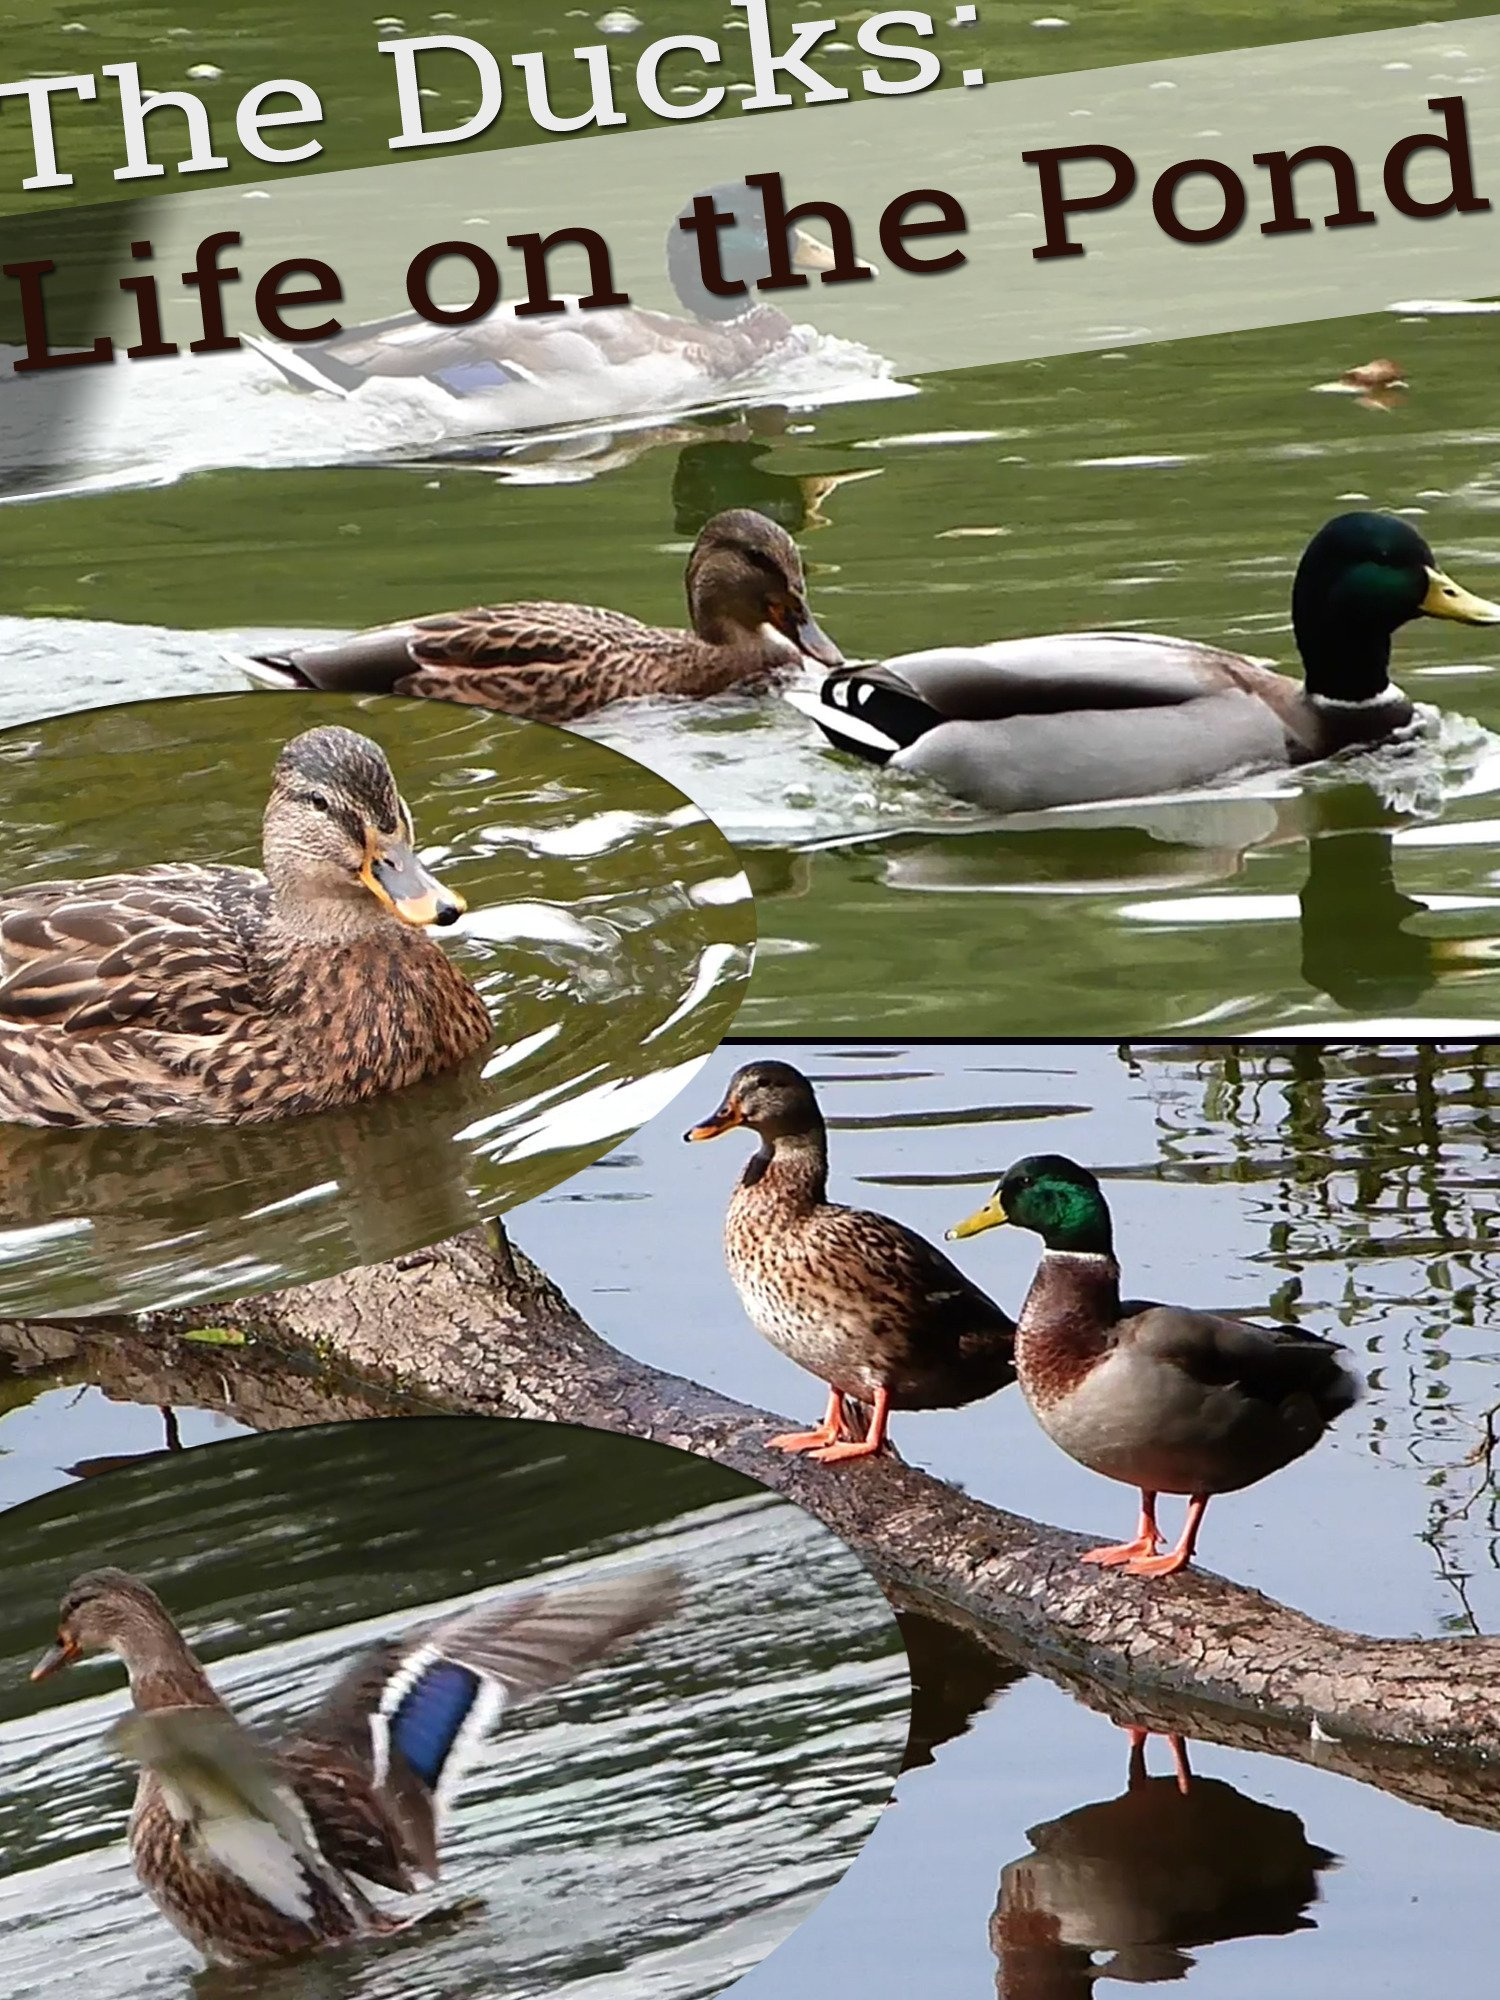 The Ducks: Life on the Pond